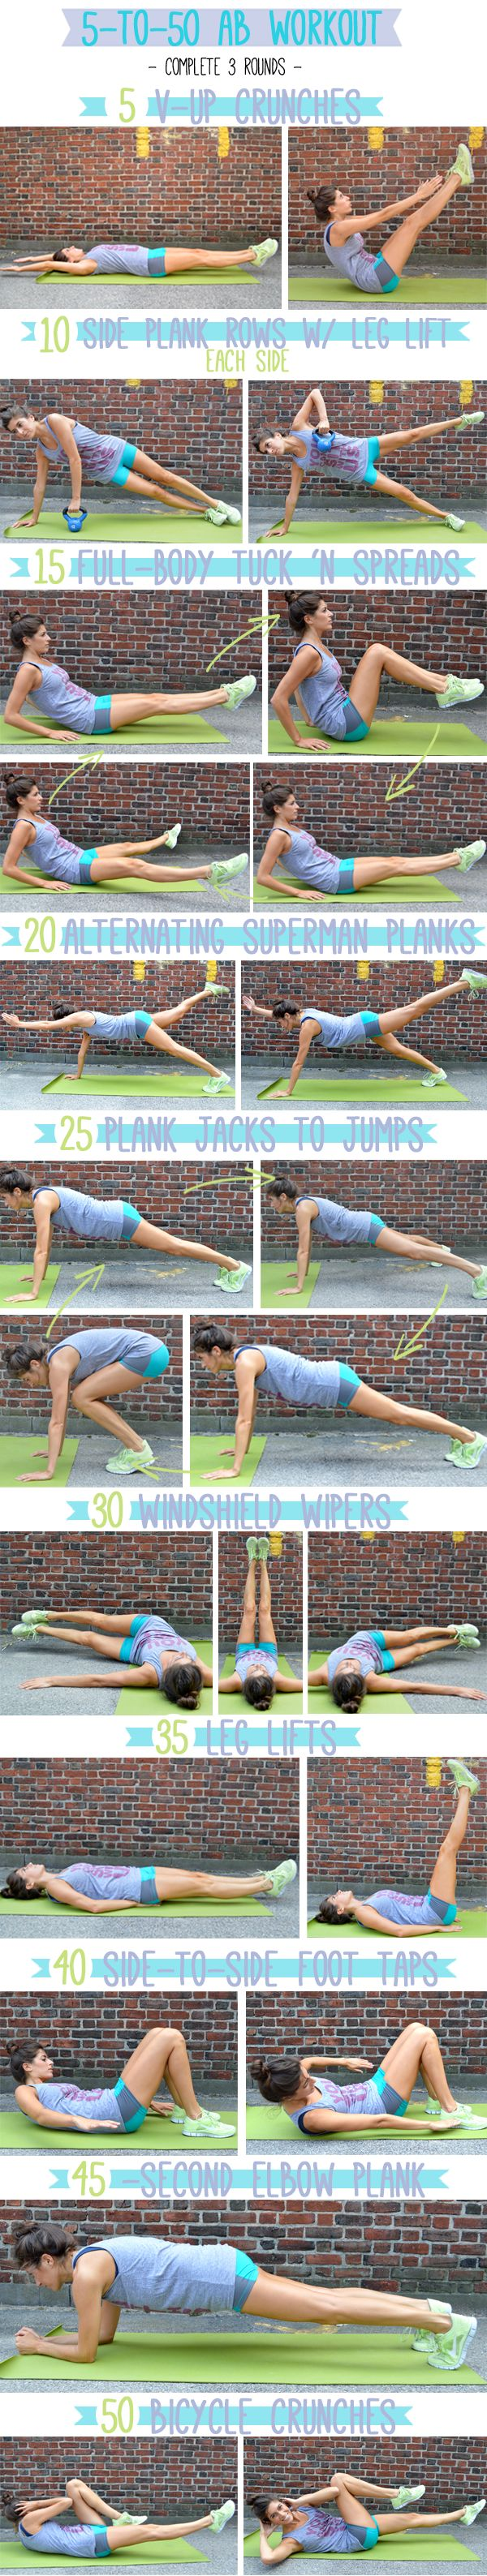 5-to-50 Ab Workout. Do three rounds; you just need a weight and exercise mat!